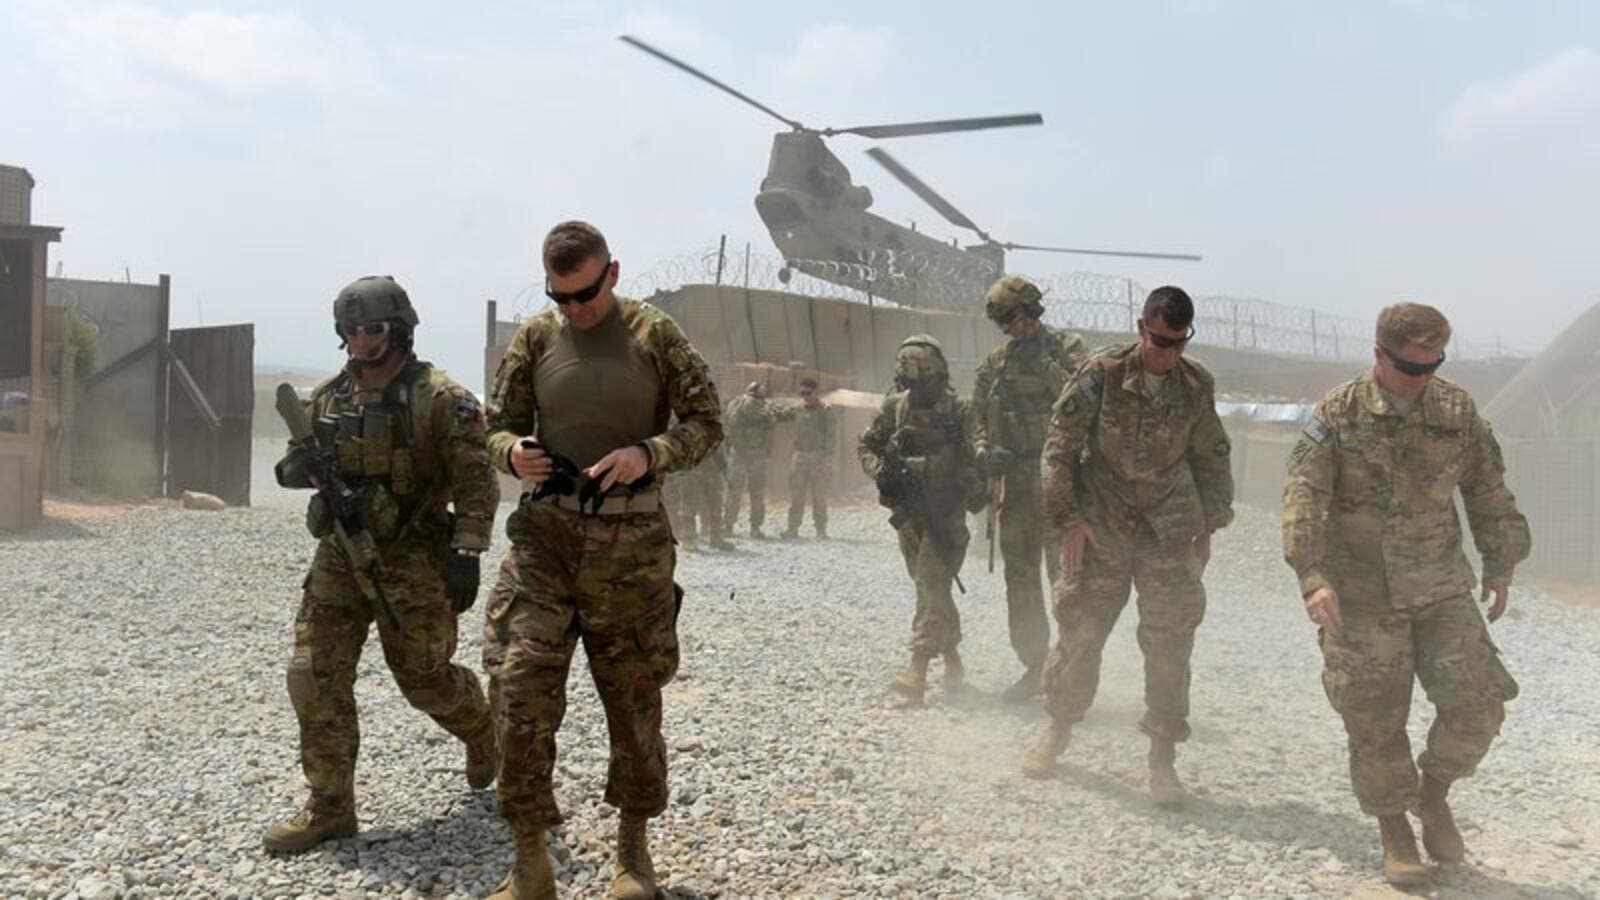 U.S. Army soldiers walk as a NATO helicopter flies overhead at coalition force Forward Operating Base (FOB) Connelly in the Khogyani district in the eastern province of Nangarhar on August 13, 2015. (AFP/Wakil Kohsar)